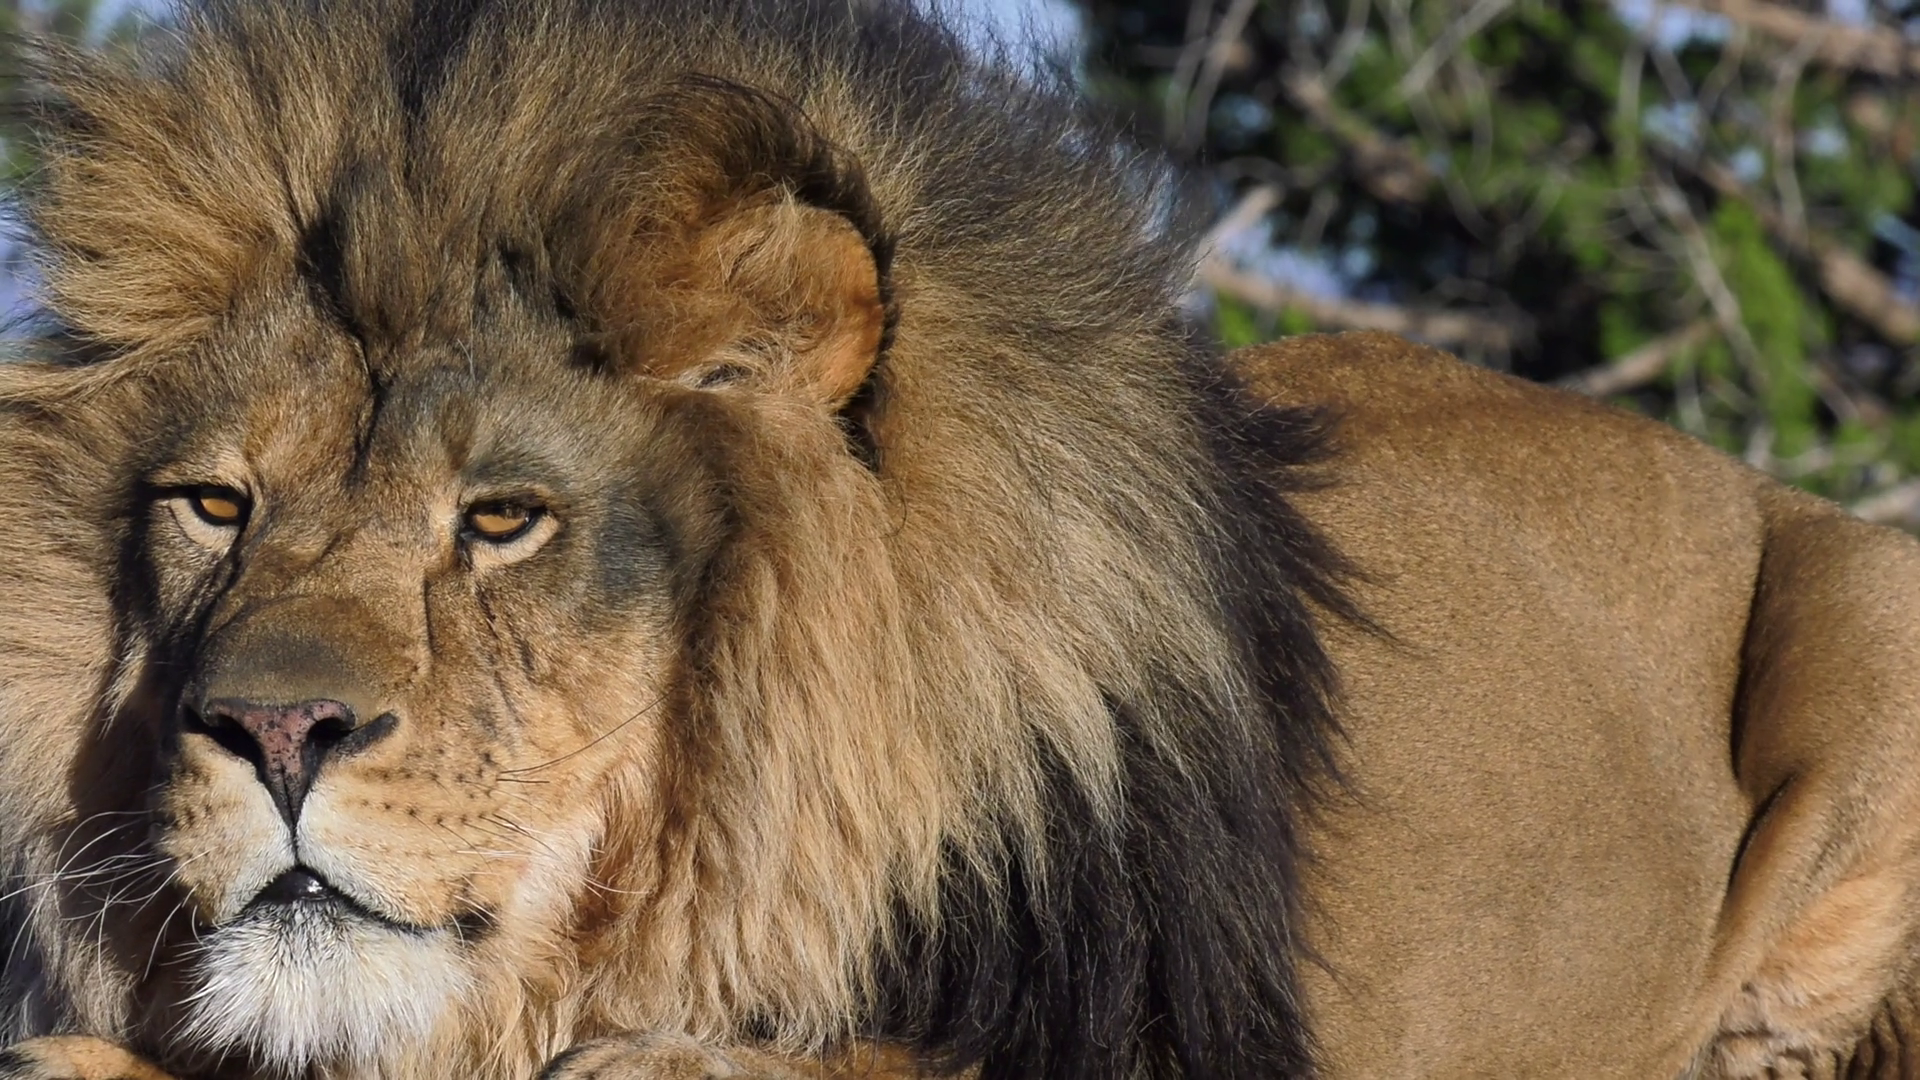 Lion Laying Down Png - male lion laying down close up 4k Stock Video Footage - Storyblocks Video